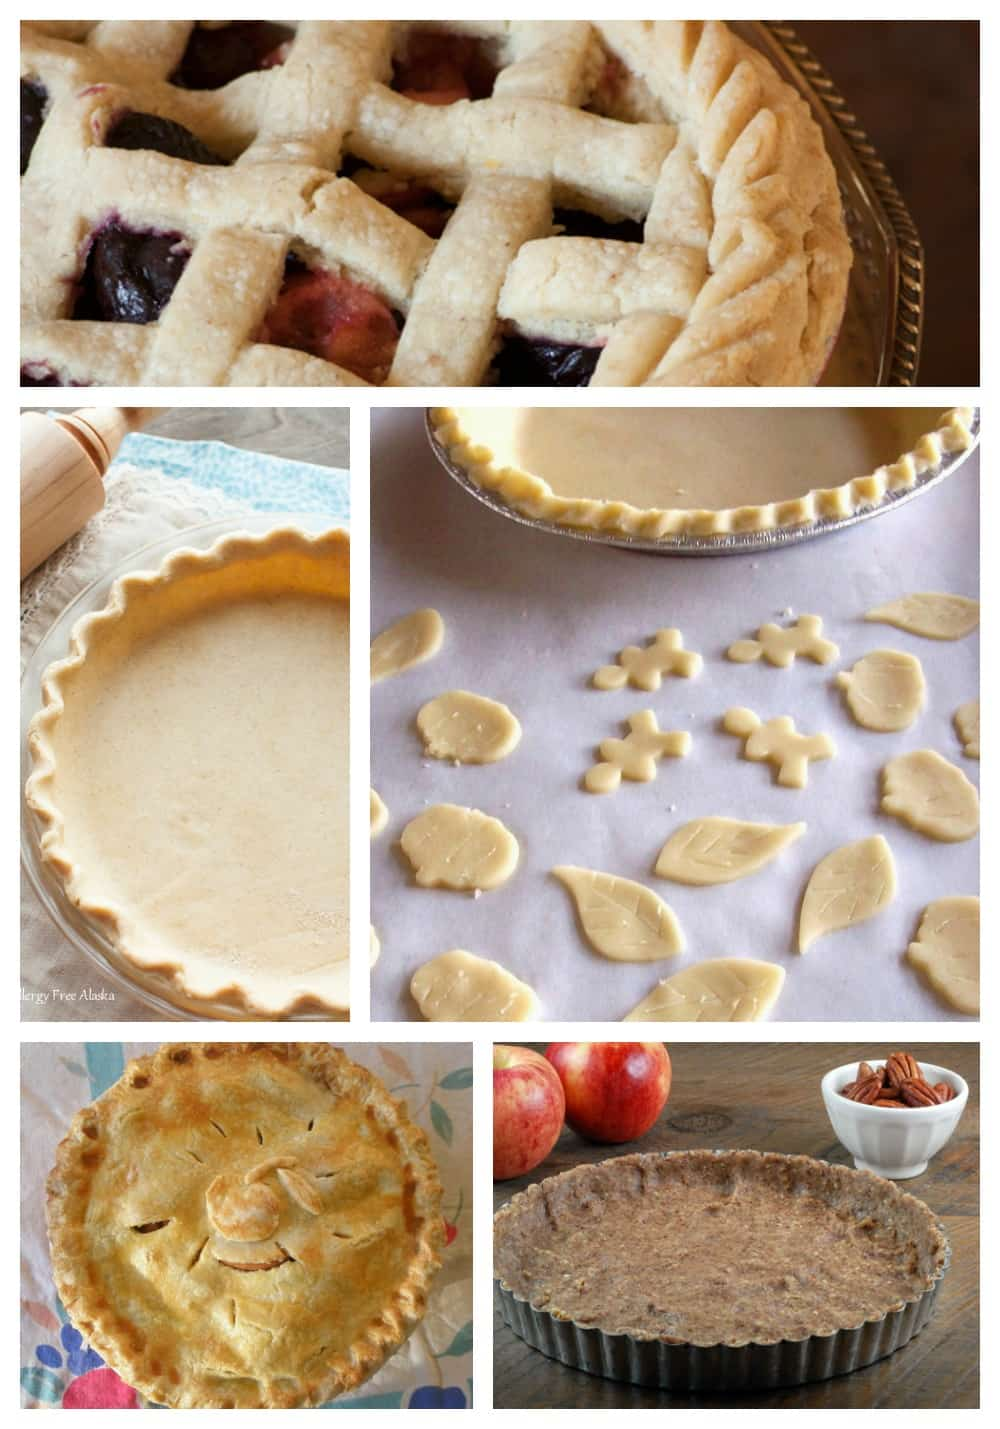 PIE!!! Top 40 Gluten-Free Pie Crust Recipes (Shown is Gluten-Free Flaky Pie Crust)